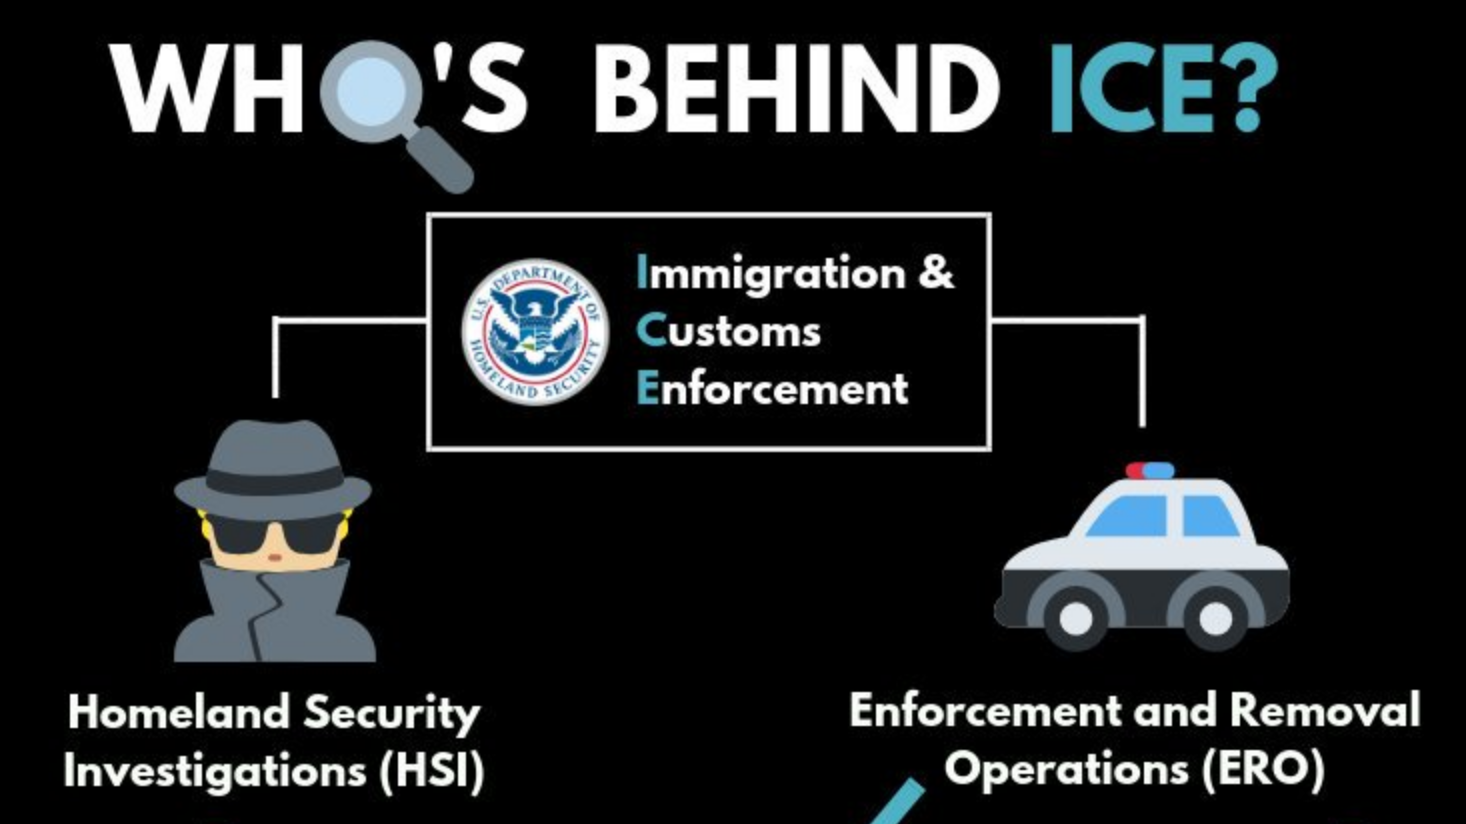 Who's Behind ICE Infographic